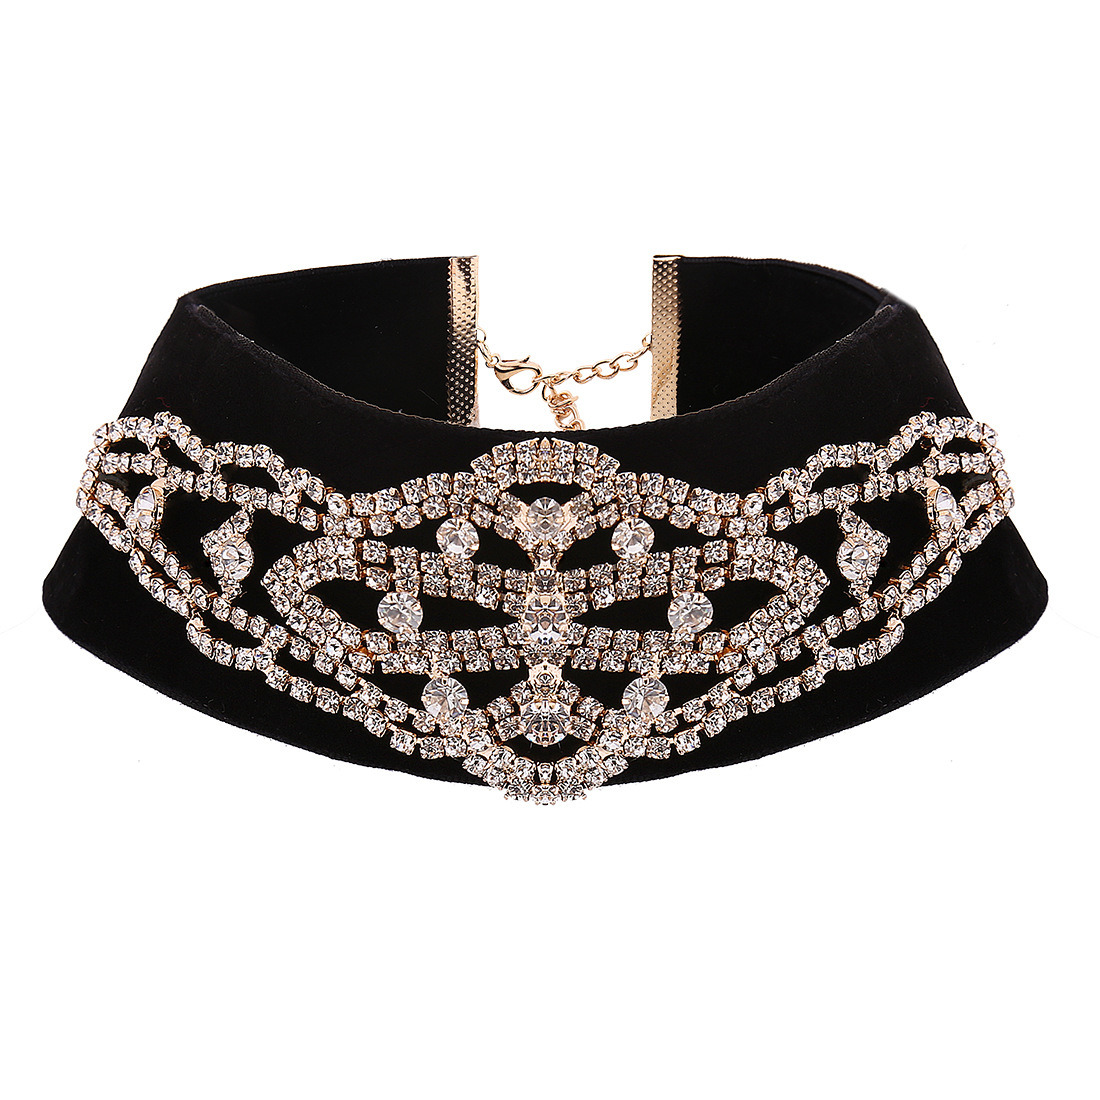 Fashion Vintage Velvet Designer Rhinestone Diamond Choker Necklace Jewelry